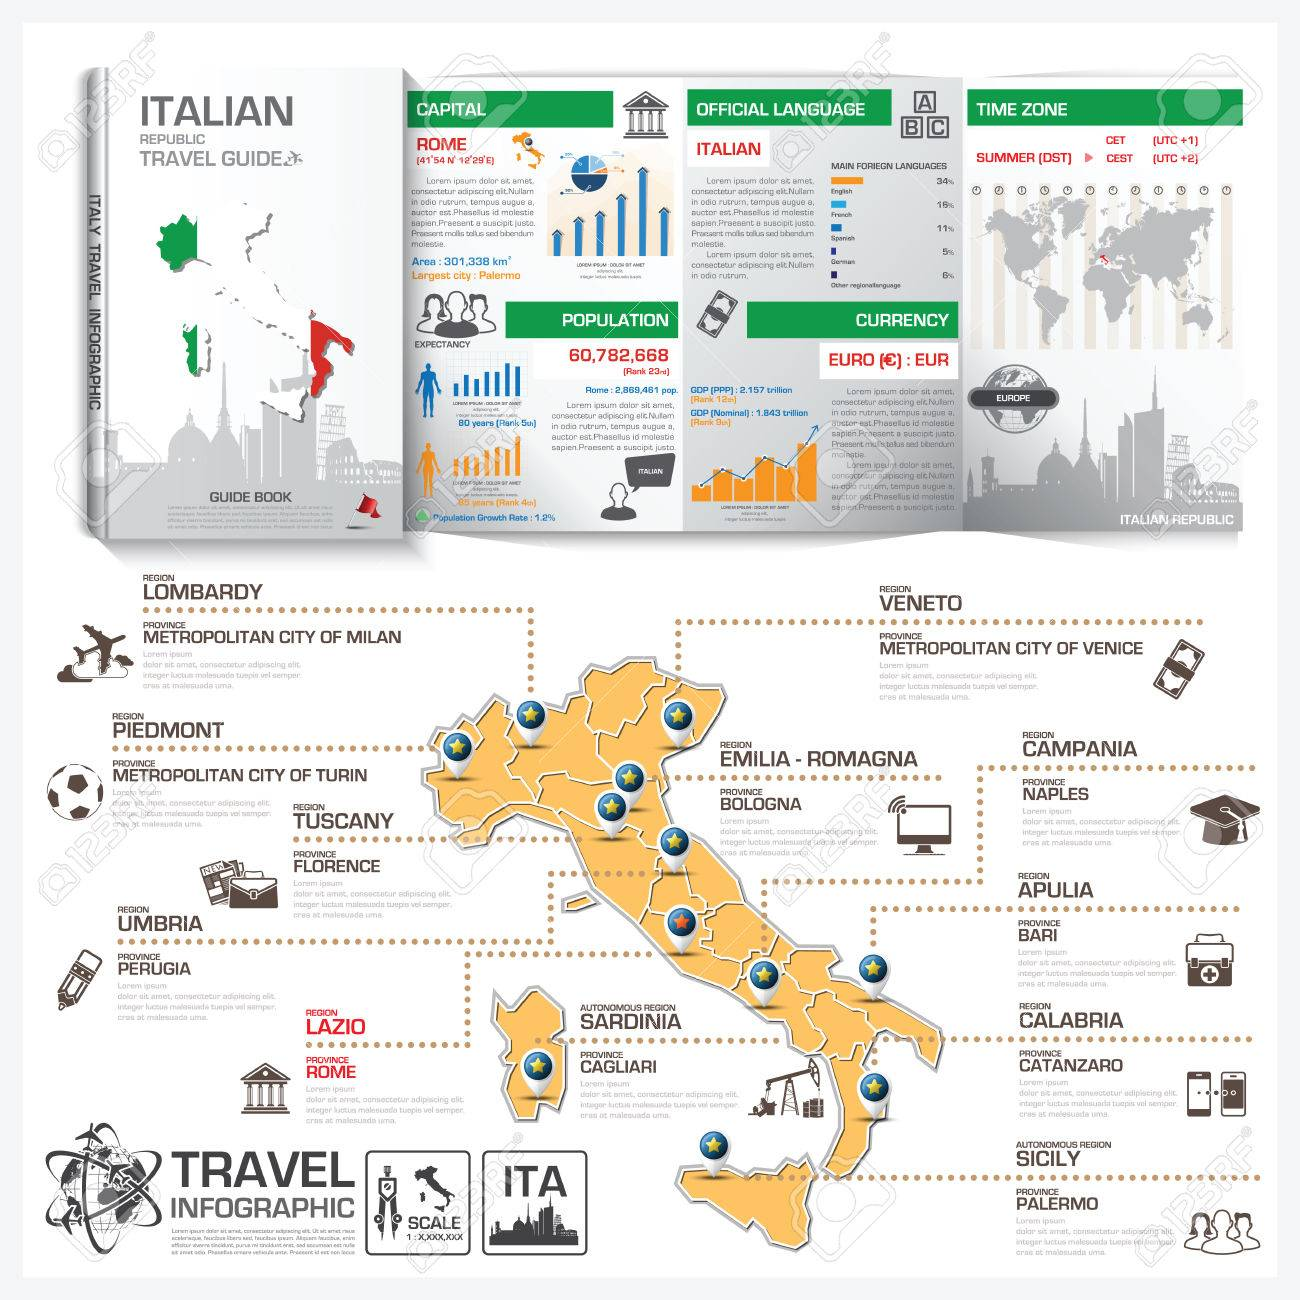 italian republic travel guide book business infographic with